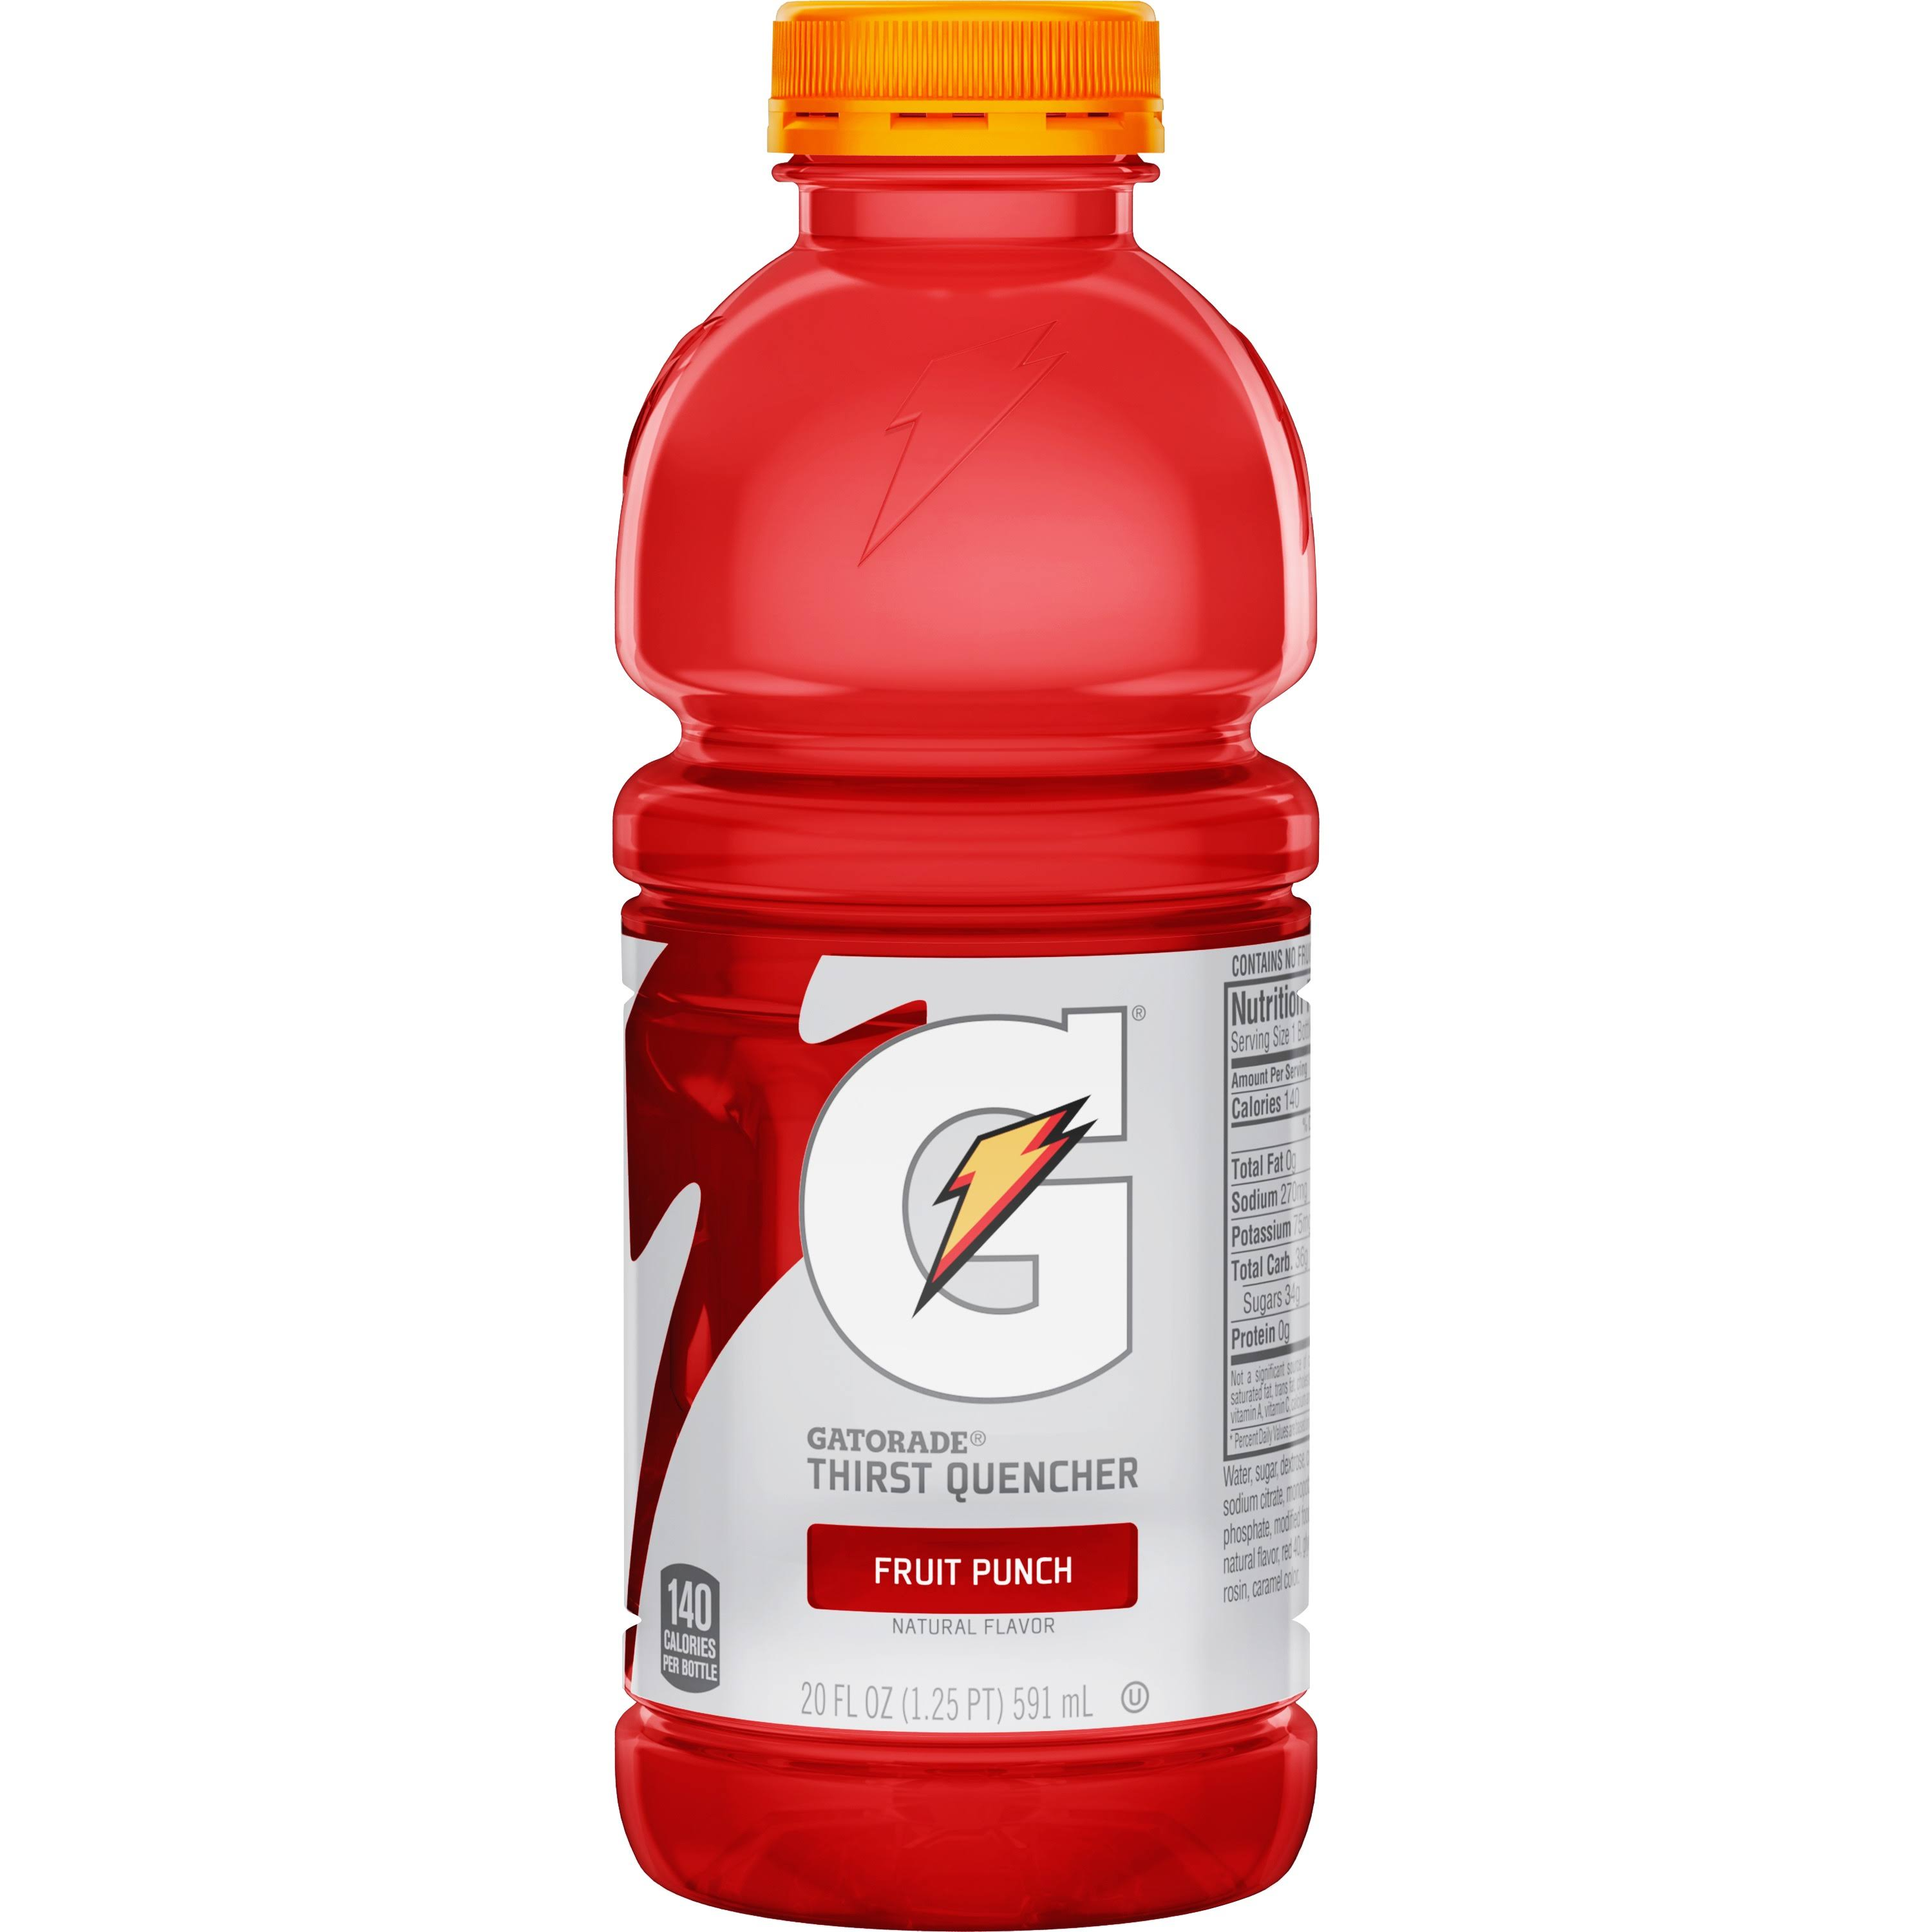 Gatorade G Series Thirst Quencher, Perform, Fruit Punch - 20 fl oz